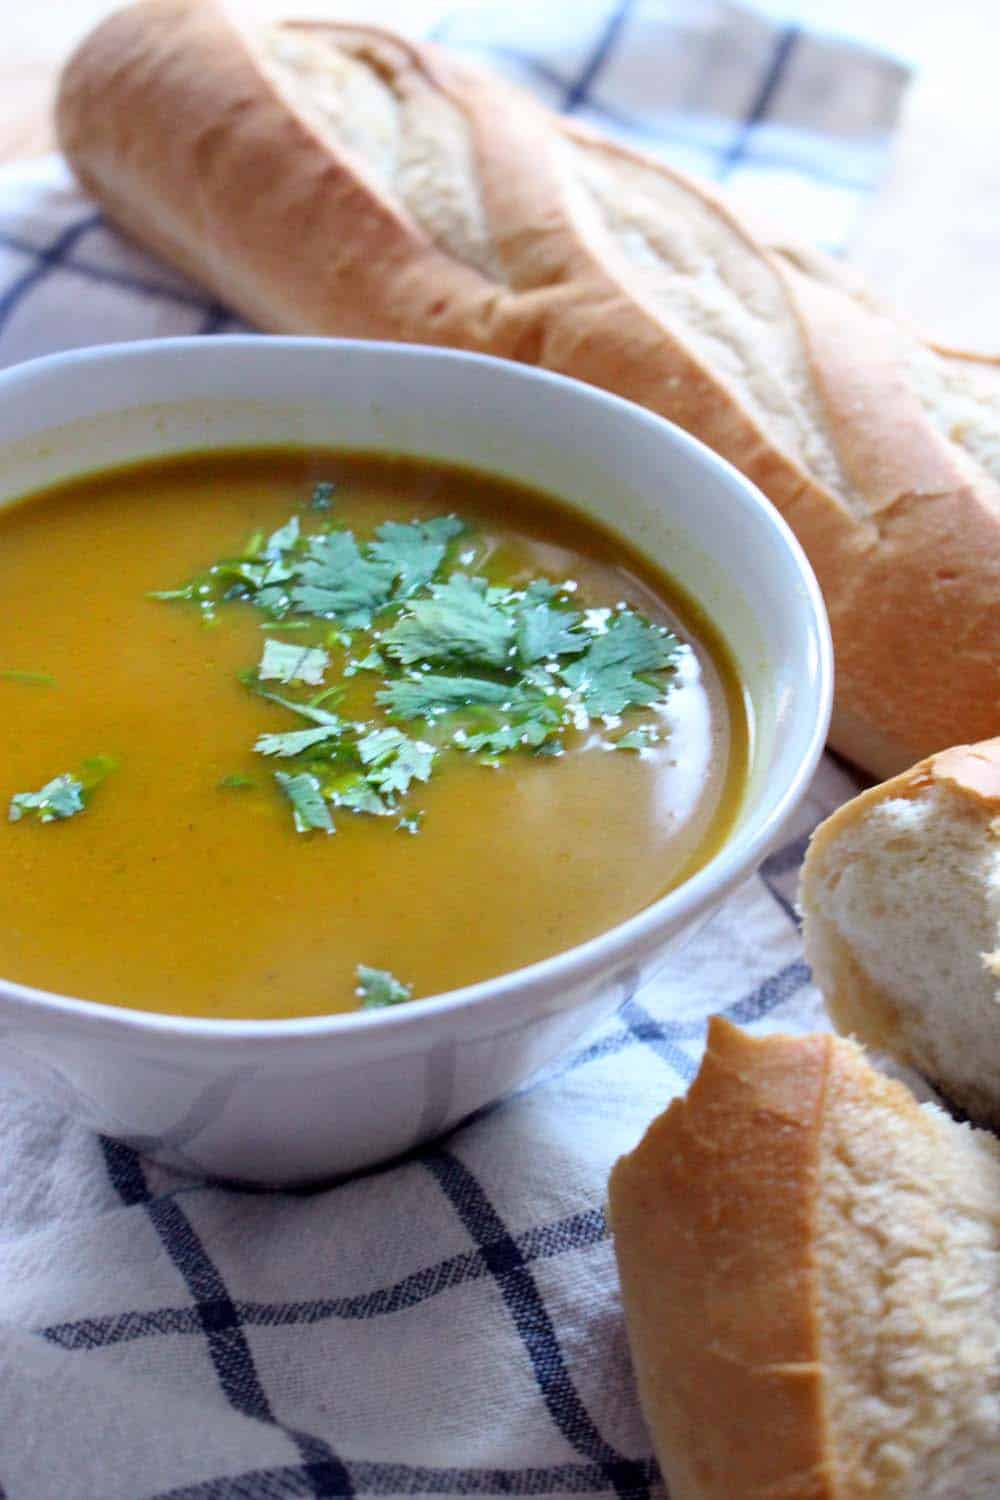 Slow Cooker Butternut Squash Soup | This creamy and scrumptious butternut squash soup is vegan, full of flavor, and super healthy from the addition of ginger and turmeric. Cook in your slow cooker for a really easy dinner- your house will smell amazing!